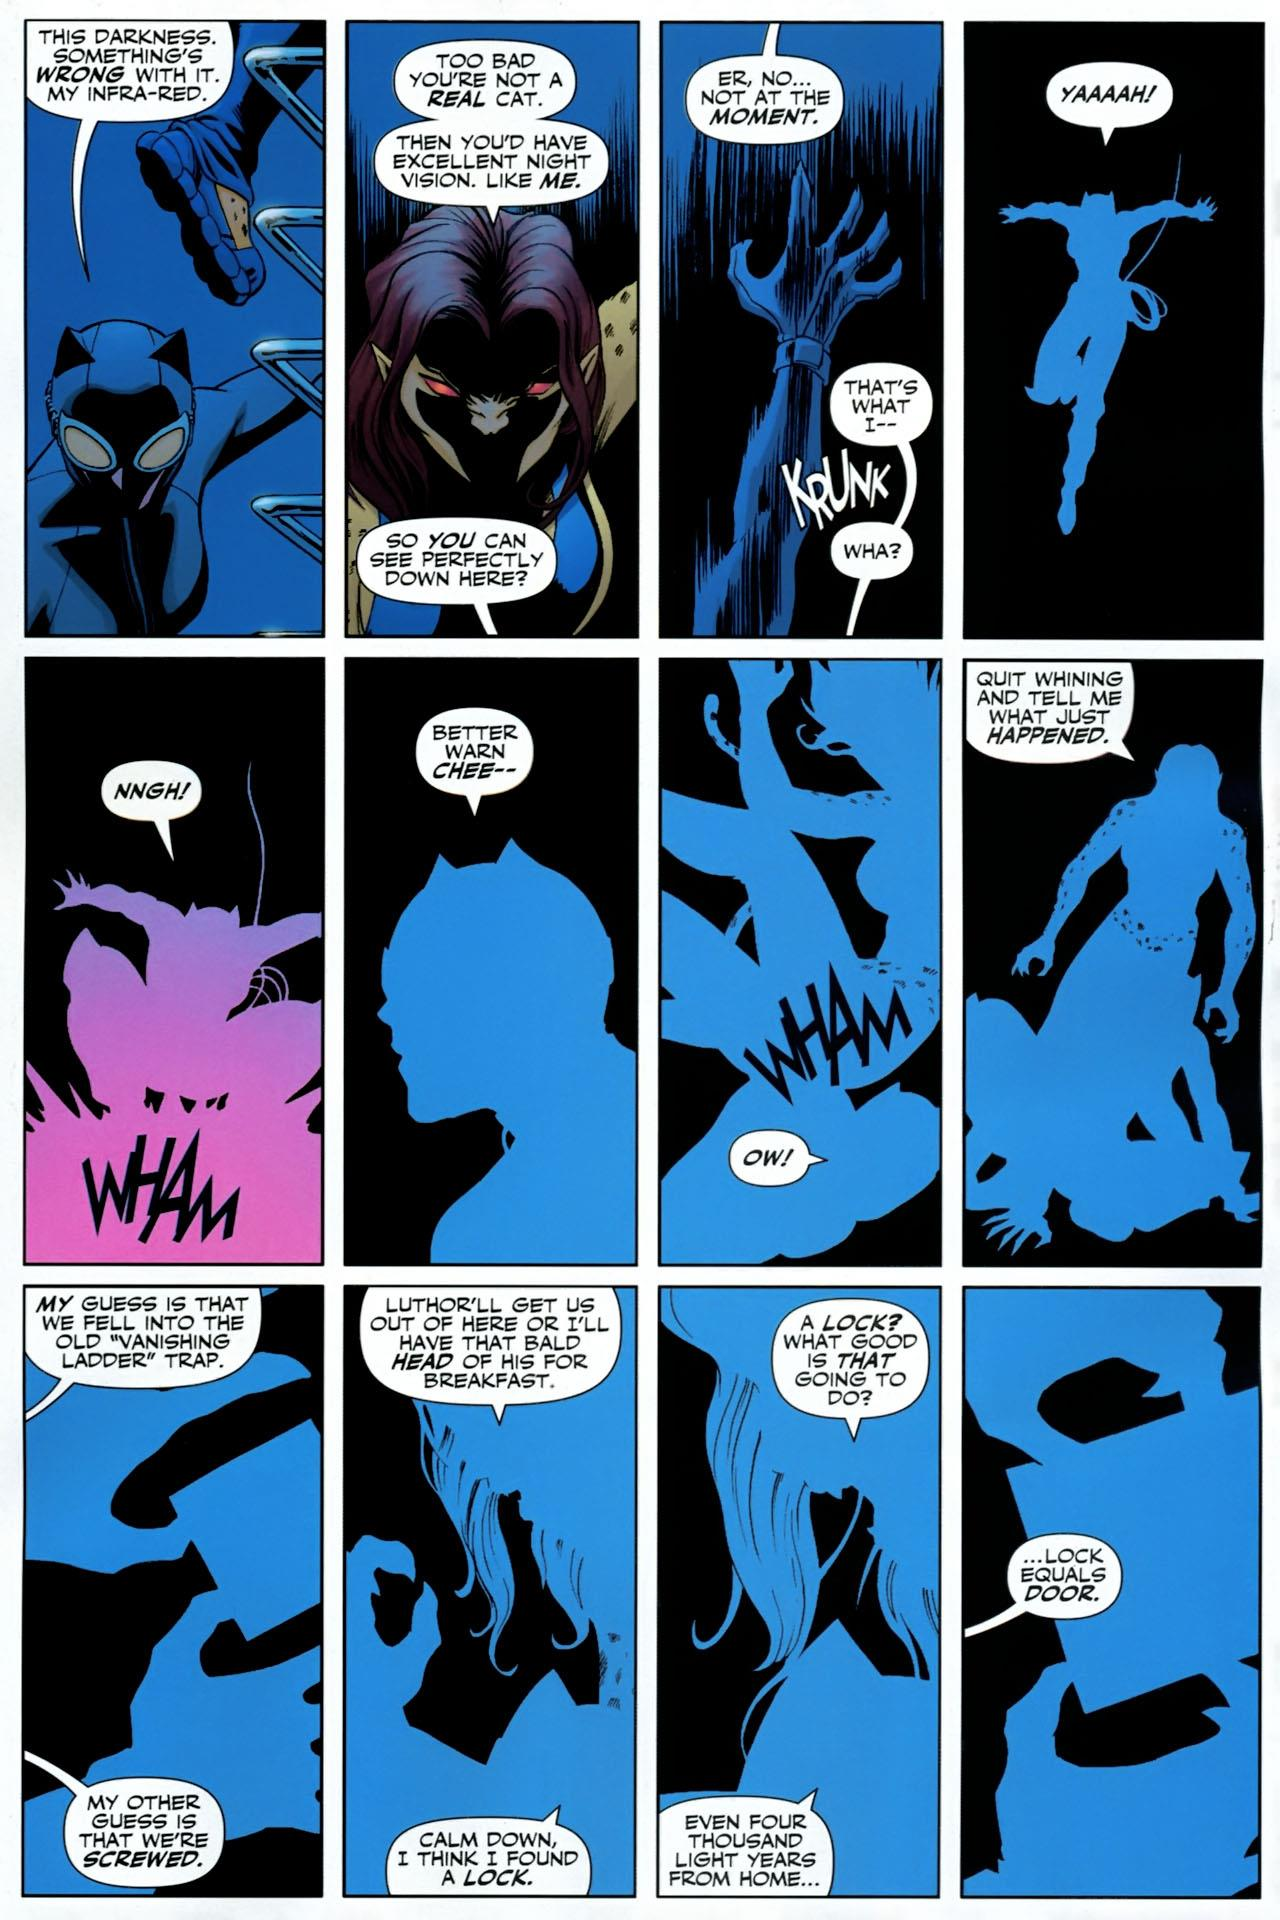 Catwoman Crime Pays review